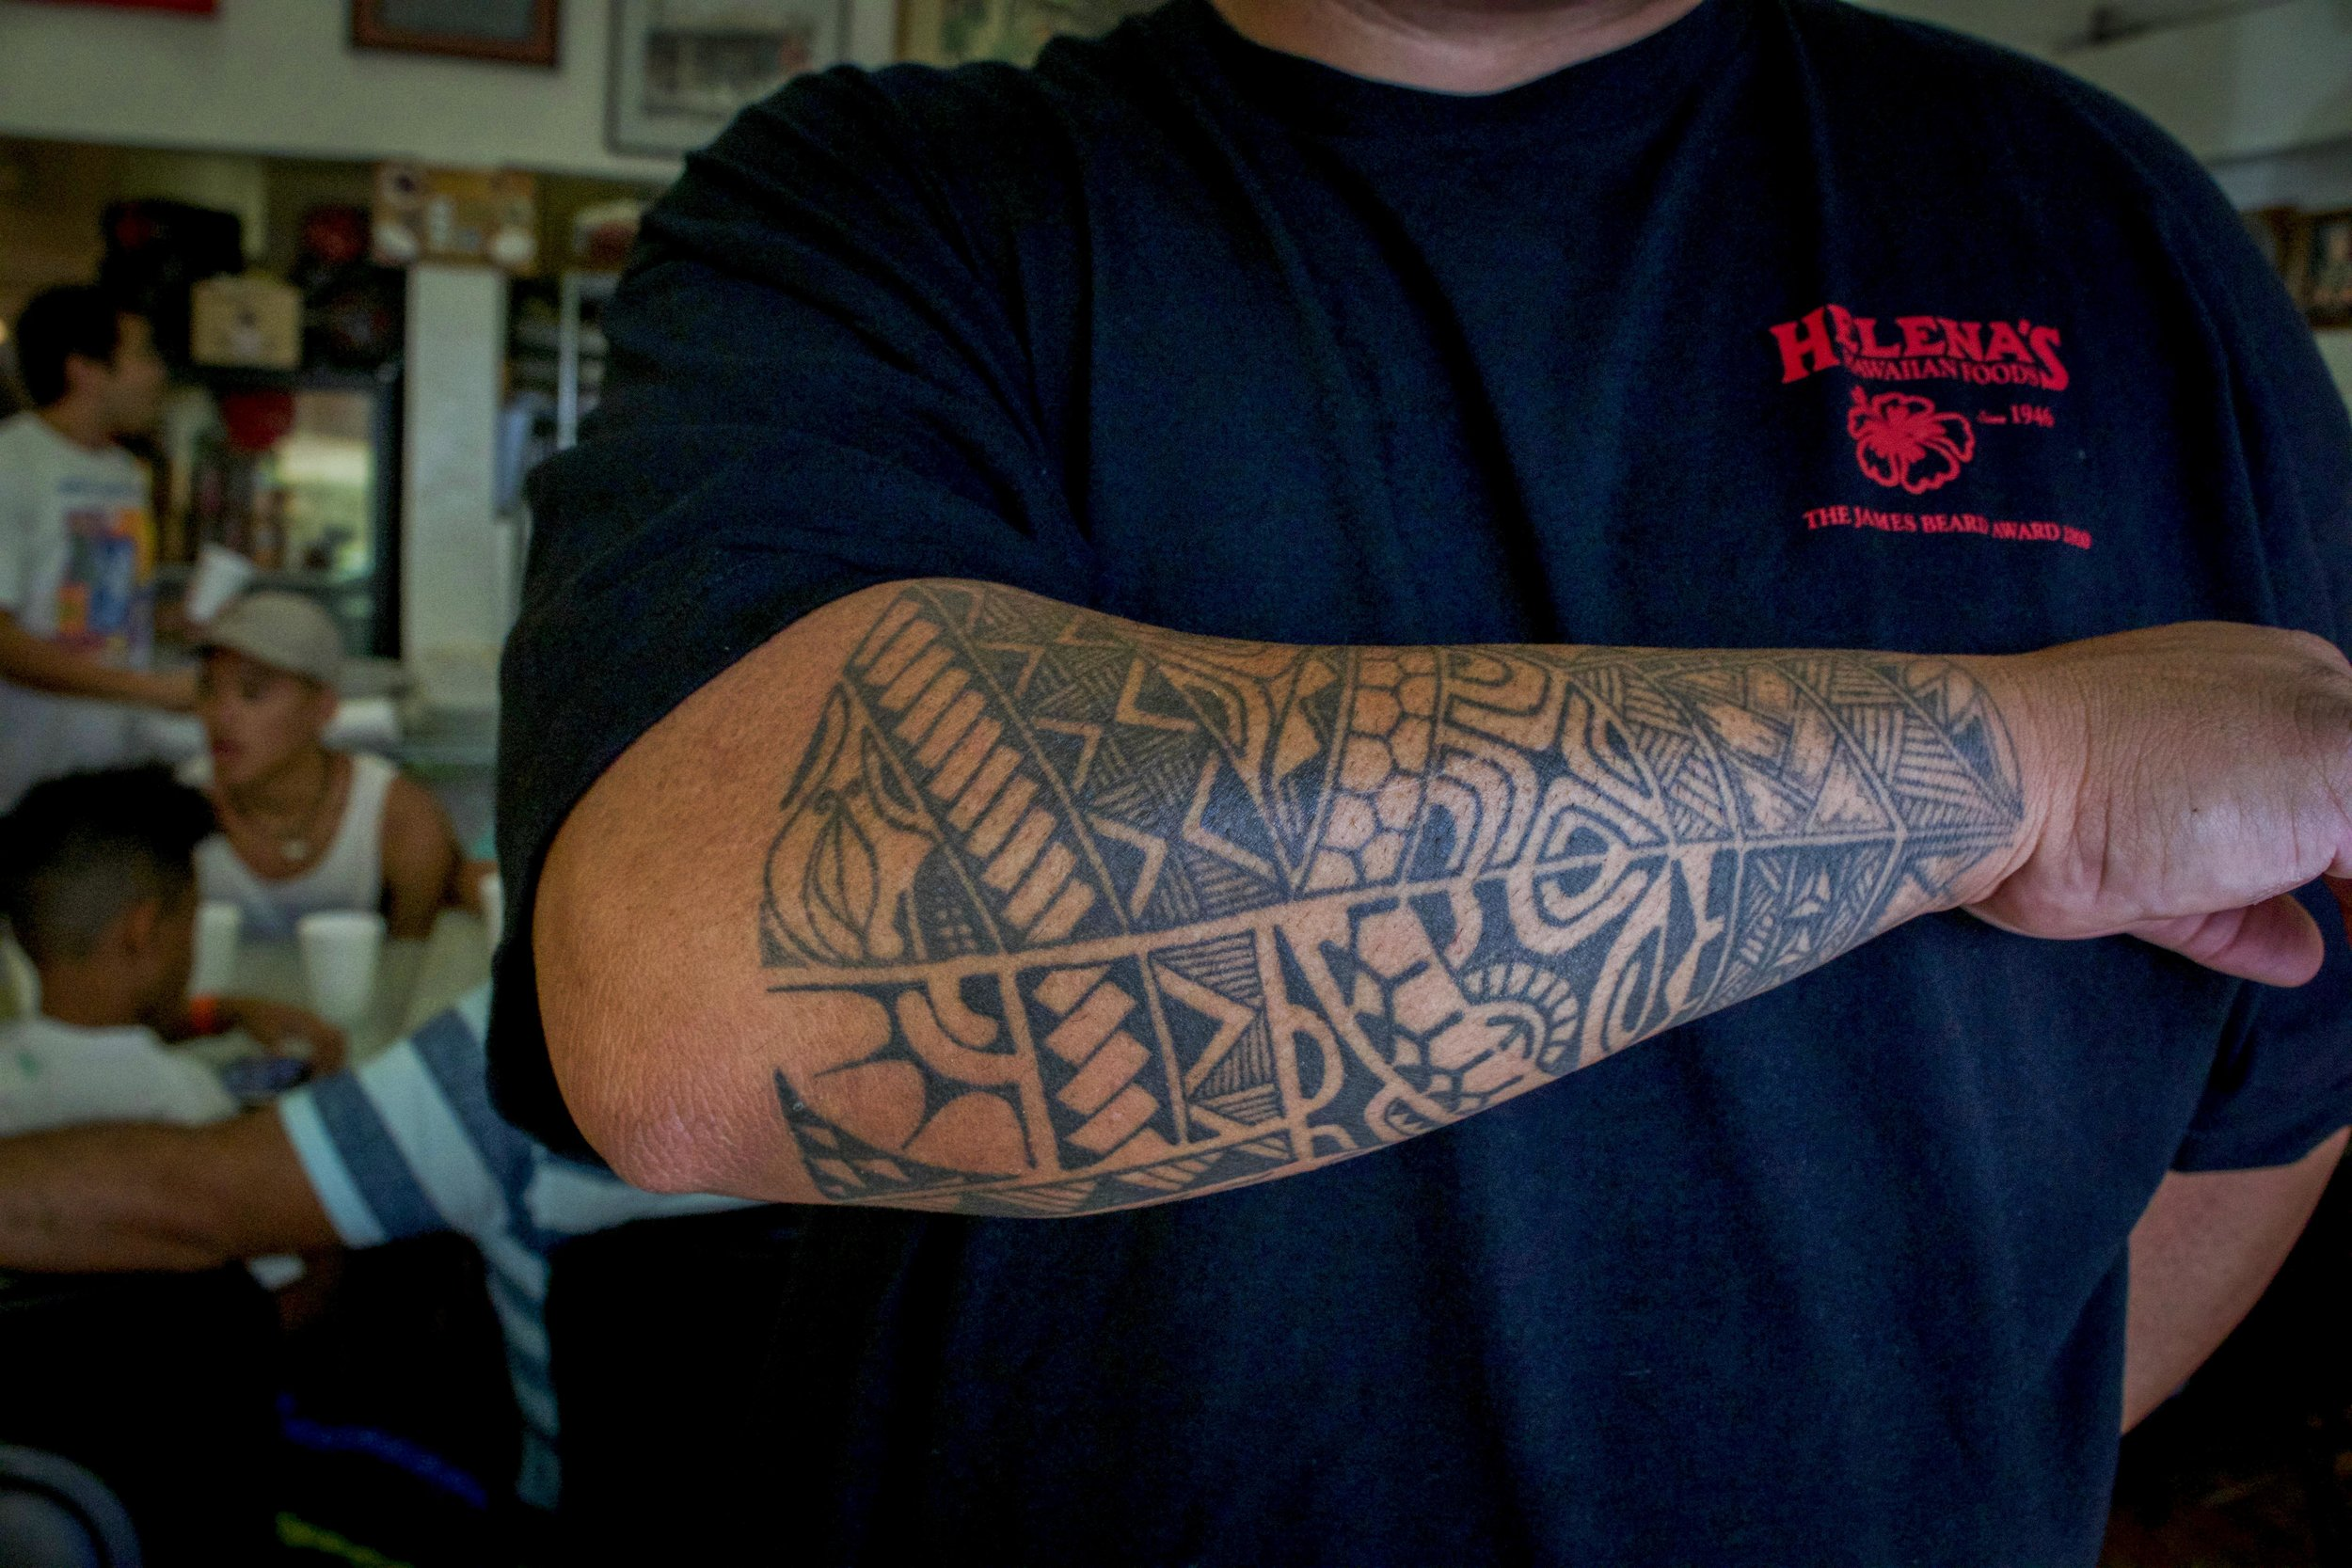 Polynesian art is still prevalent in Oahu, and nowhere is it more visible than the tattoo scene.